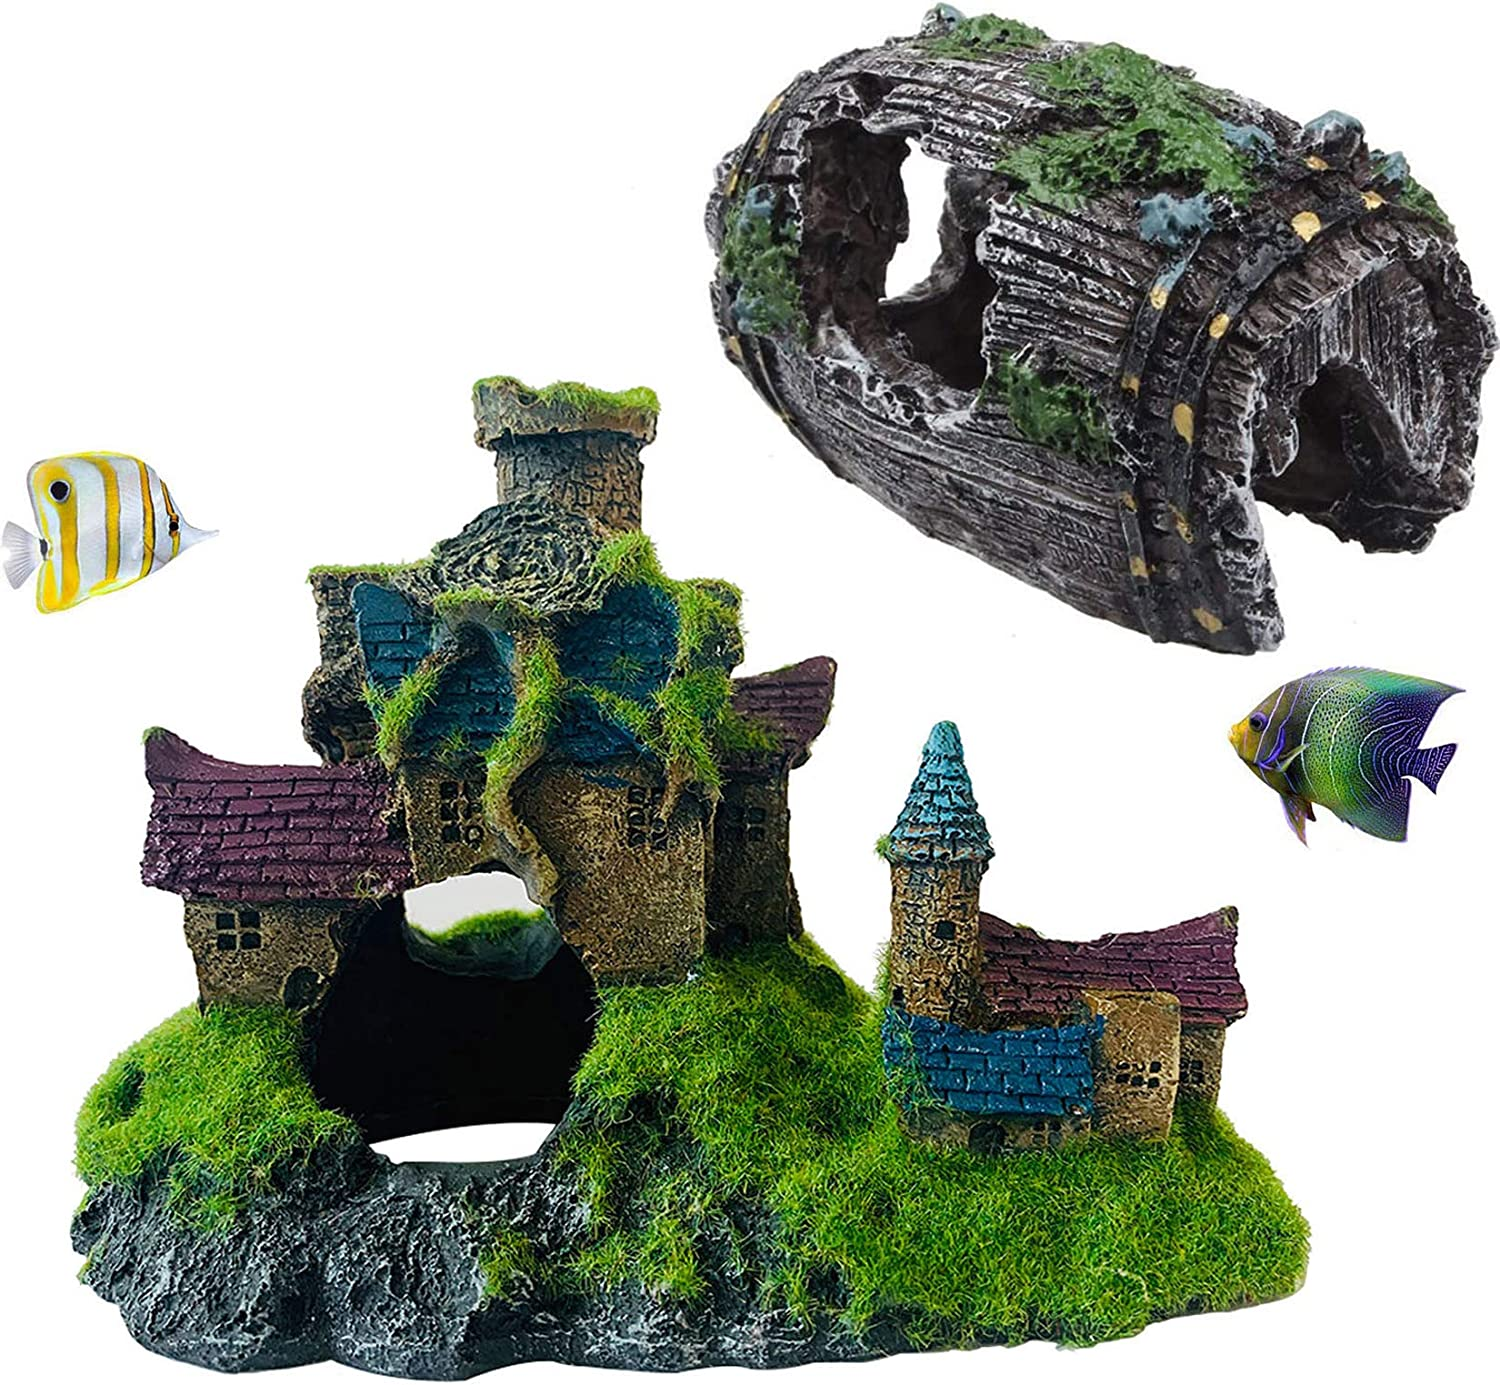 Hamiledyi Aquarium Ornament Castle Resin Broken Barrel Fish Hideout Betta Cave Fish Tank Decorations Handicrafts with Holes and Mossy for Underwater Environment, Gardens Pack of 2